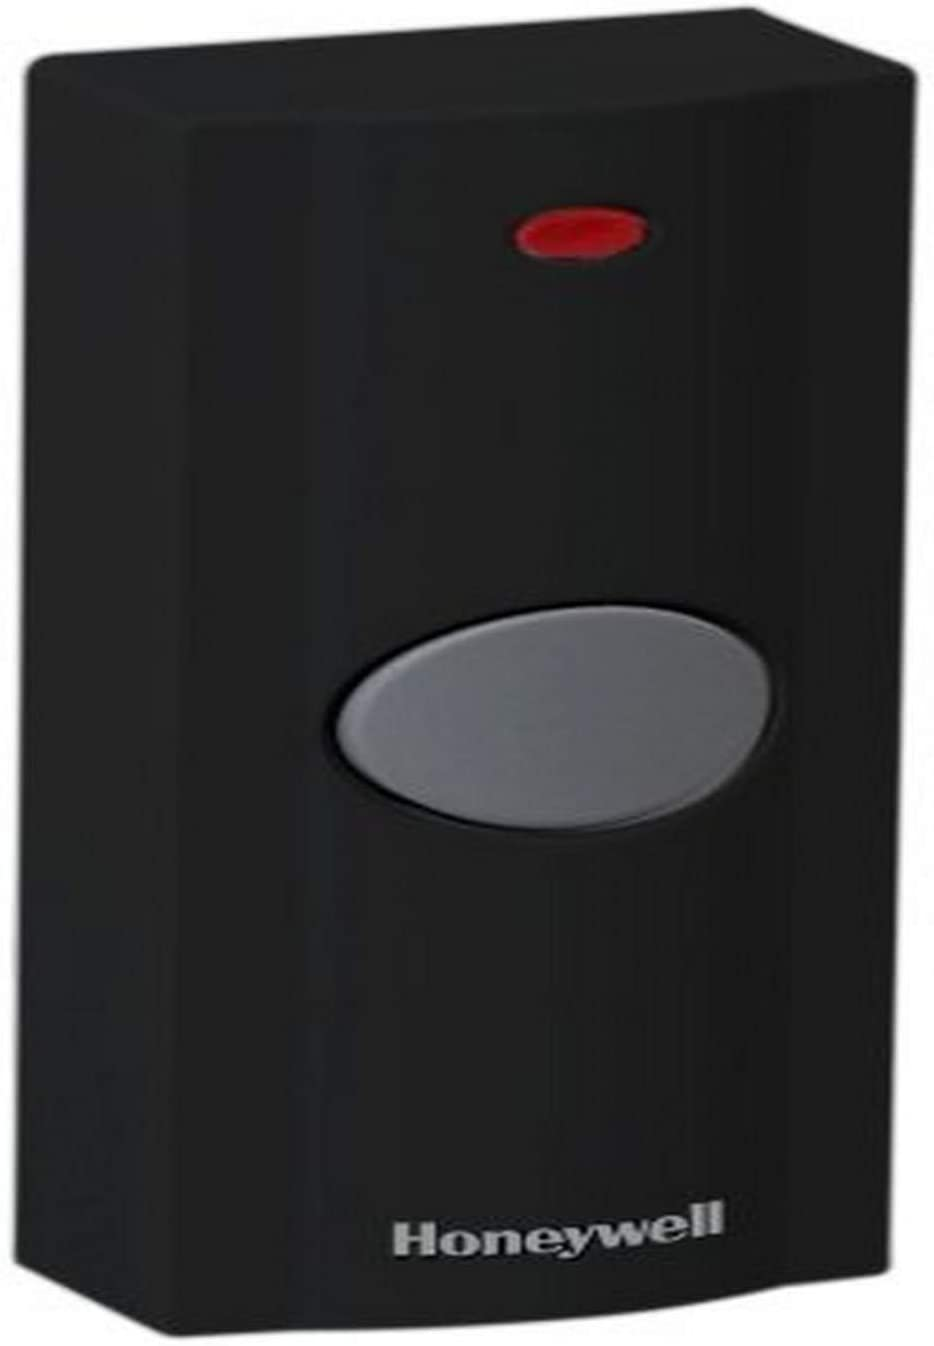 Honeywell Home RPWL201A1007 Portable Door Chime Surface Mount Push Button